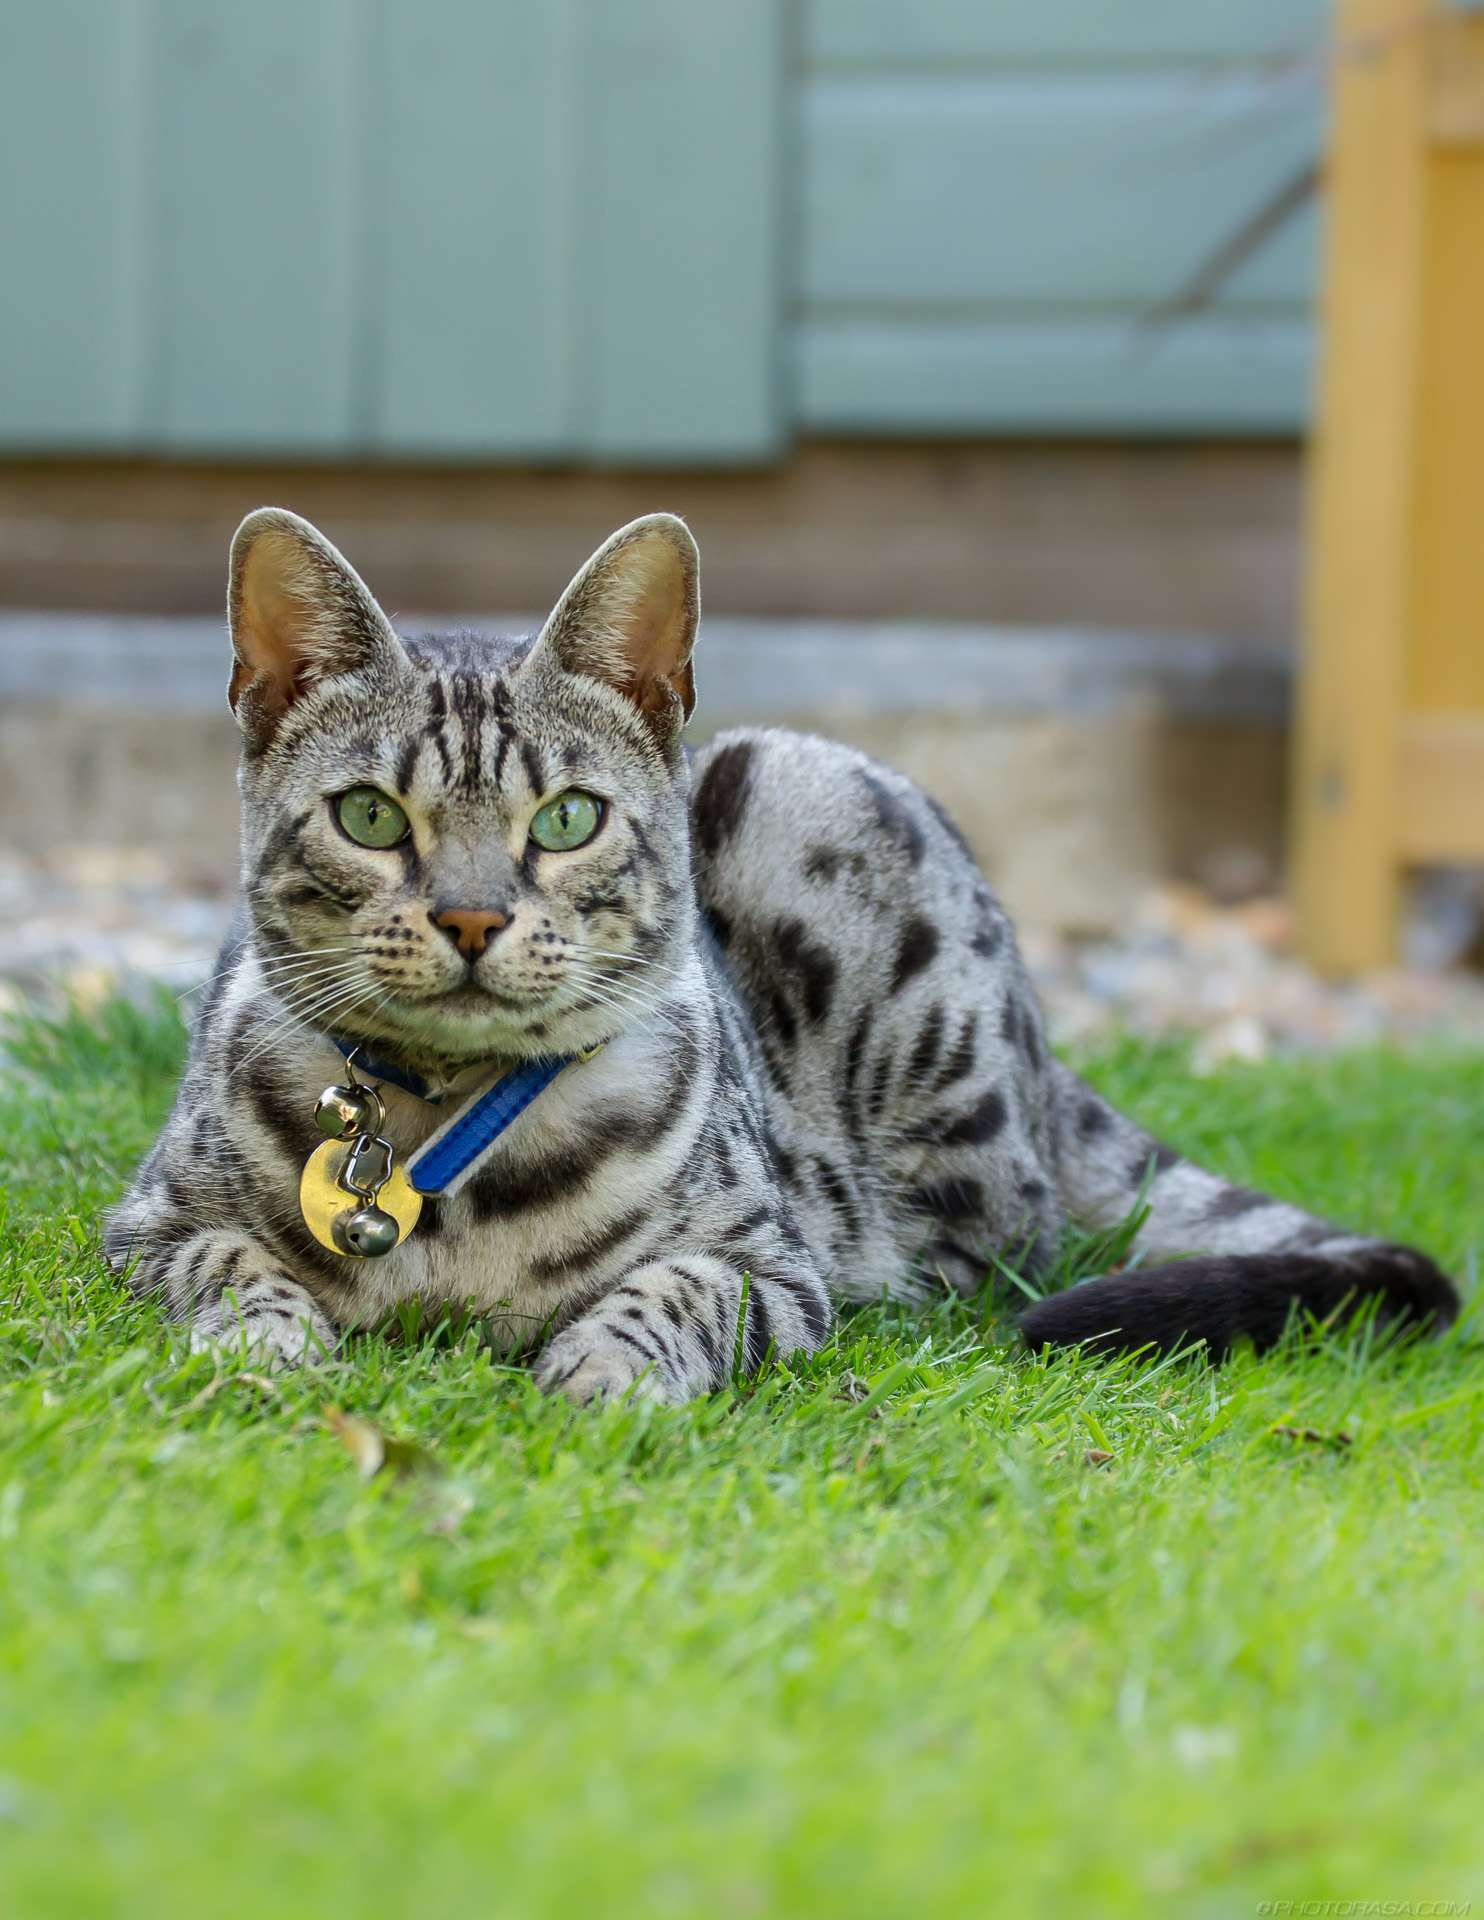 http://photorasa.com/silver-tabby-cat/sitting-and-looking-straight-ahead/